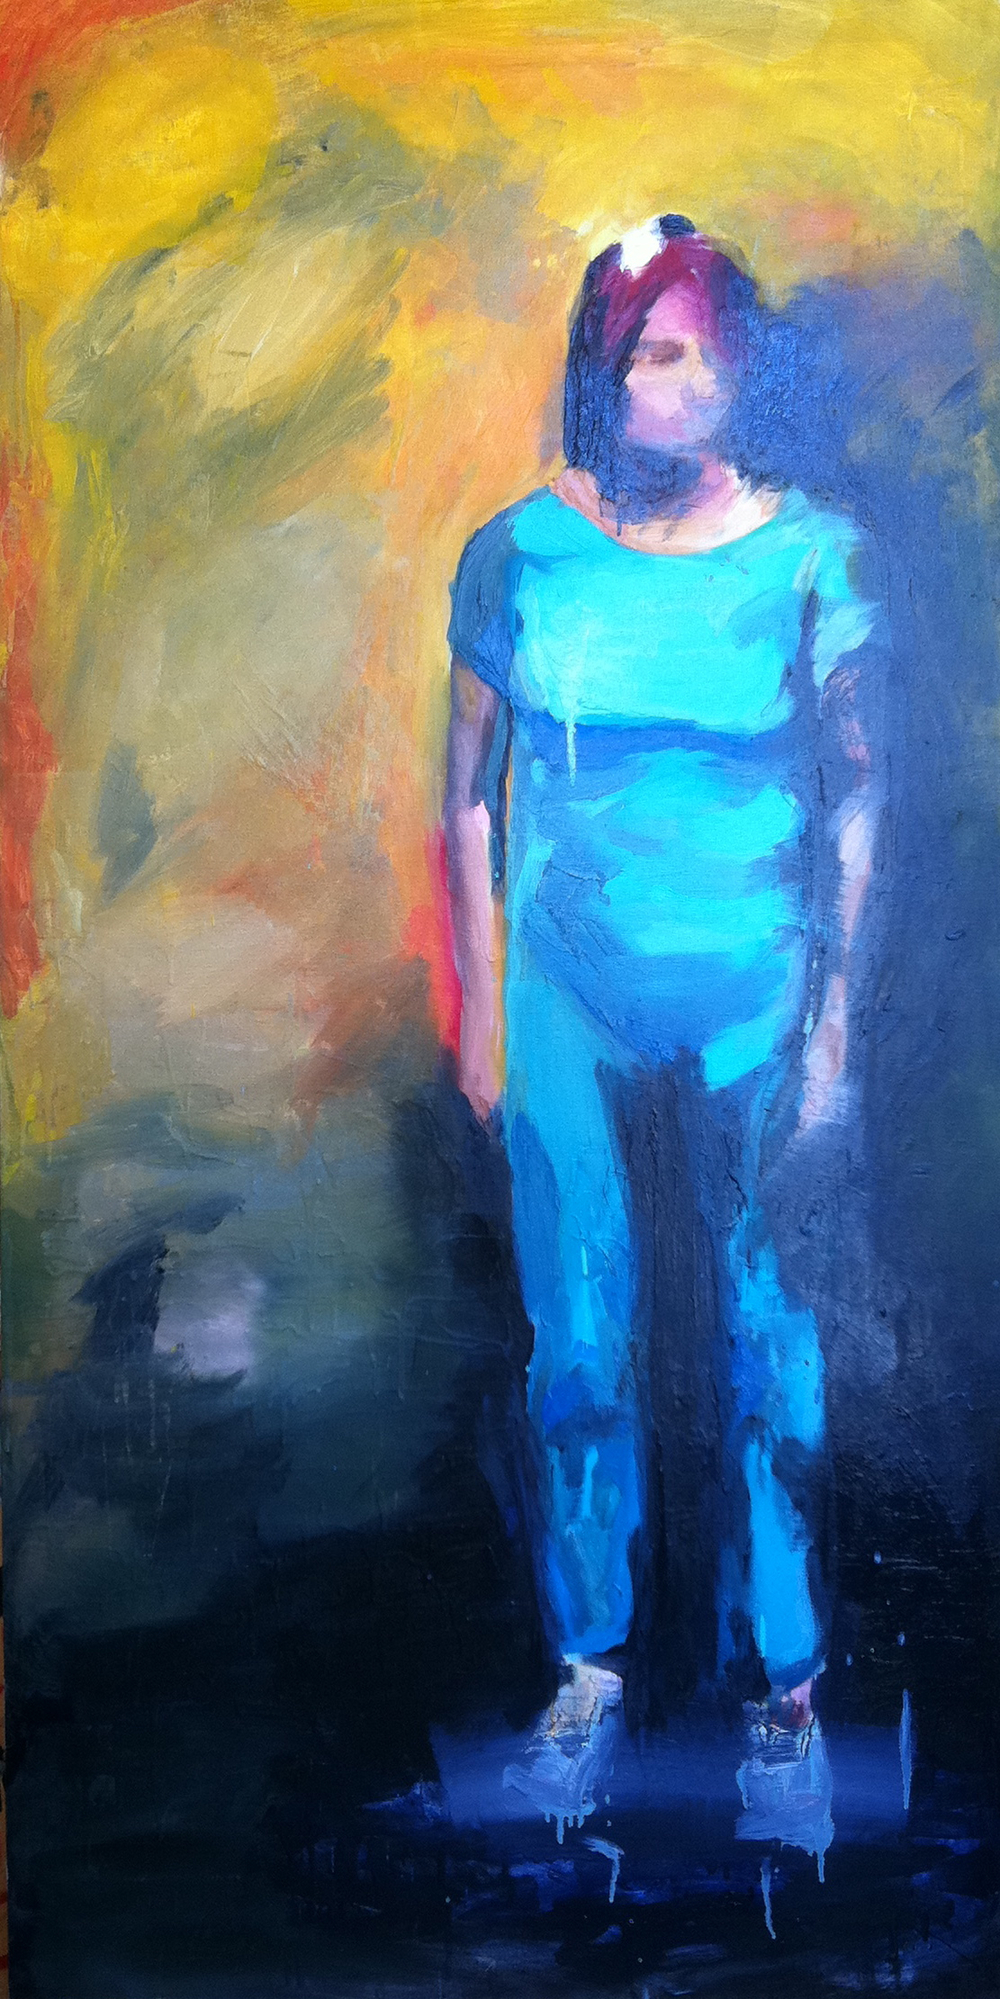 Woman at the Grande Palais 3ftx6ft oil on canvas 2012 sold